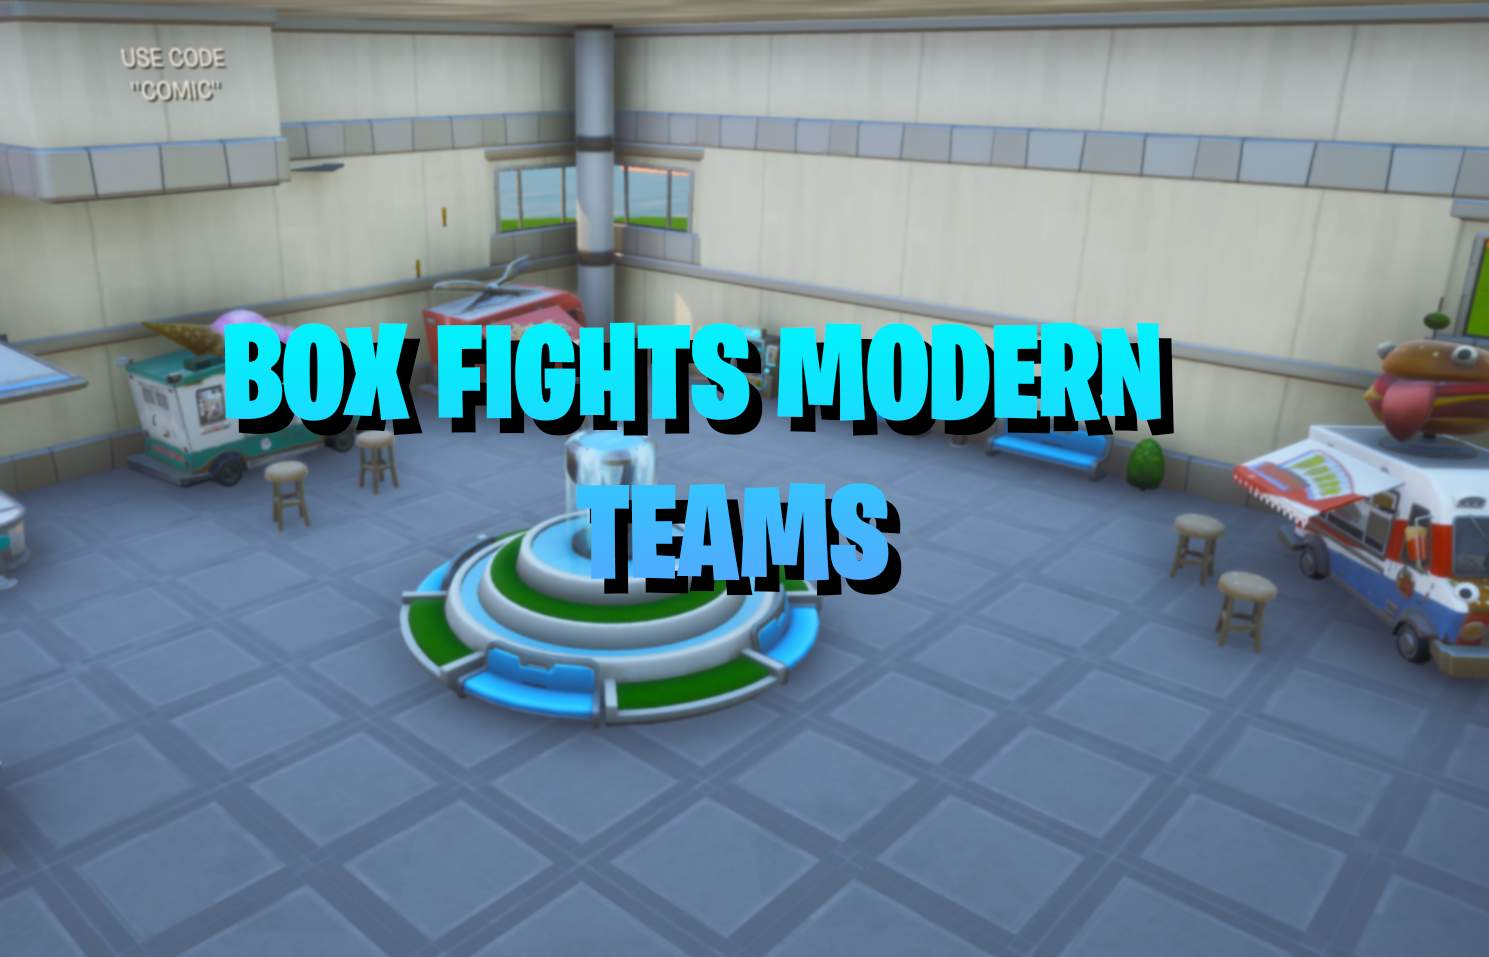 BOX FIGHTS MODERN